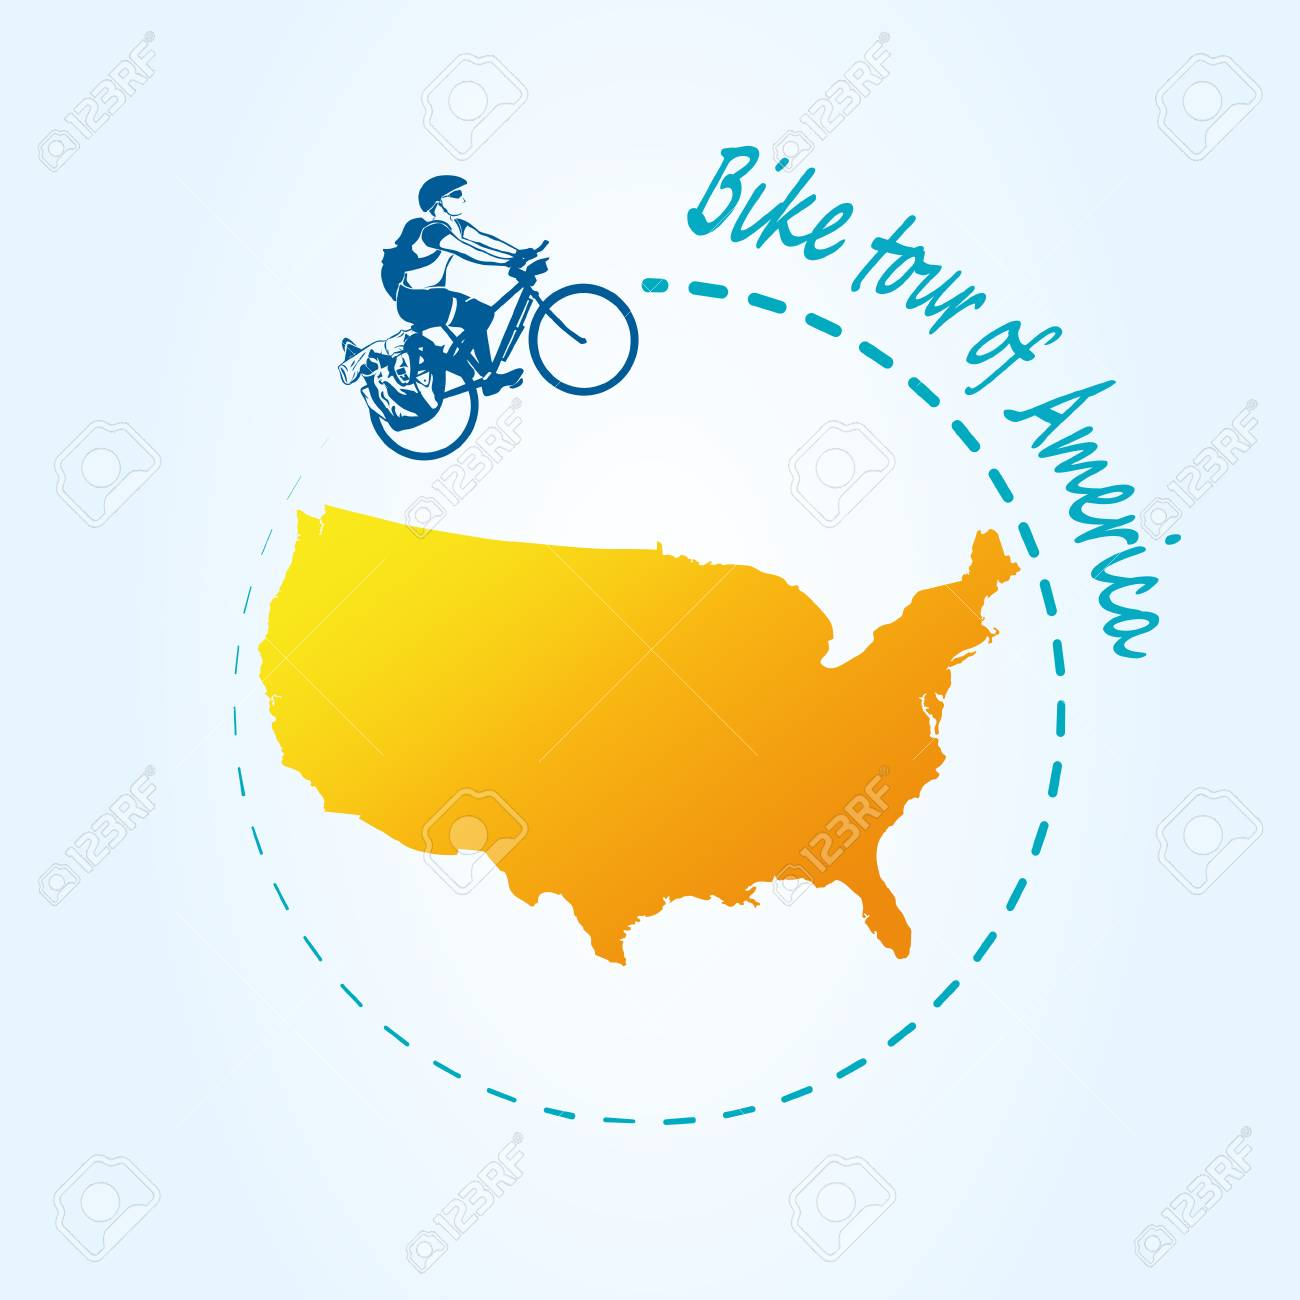 Man In The United States Map.Man Riding Bicycle Around Of The United States Of America Travel